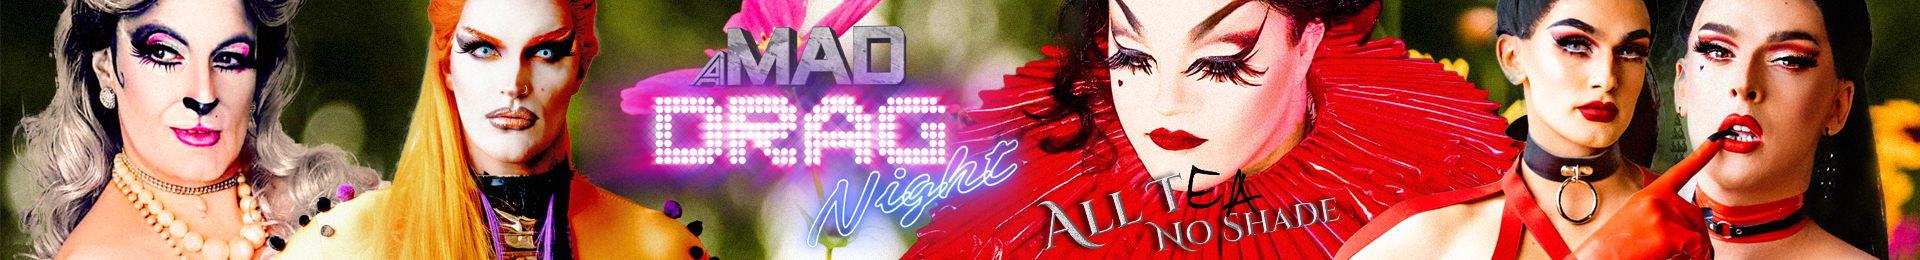 A MAD Drag Night - All T, No Shade! tickets